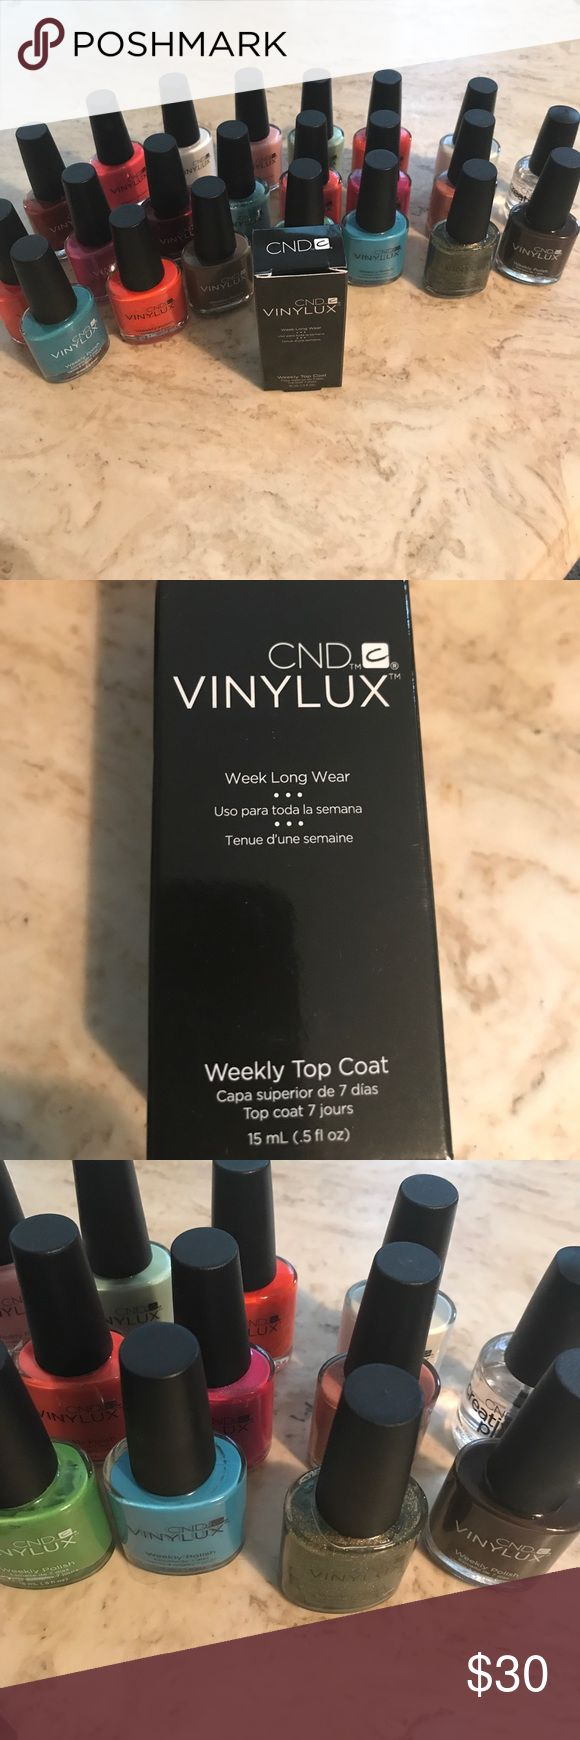 CND Vinylux 7 day nail polish bundle 21 colors 21 CND Vinylux color polishes plus one 7 day top coat and one regular top coat.  The way these polishes work is use use 1-2 coats of color polish.  Then you use the UV top coat.  You do not need a UV nail dryer.  You just expose your nails to normal UV light that you would experience as you go about your day.  The polish lasts for 7 days.  There are many positive reviews of this polish online.  It's a great alternative to traditional gel.  I…